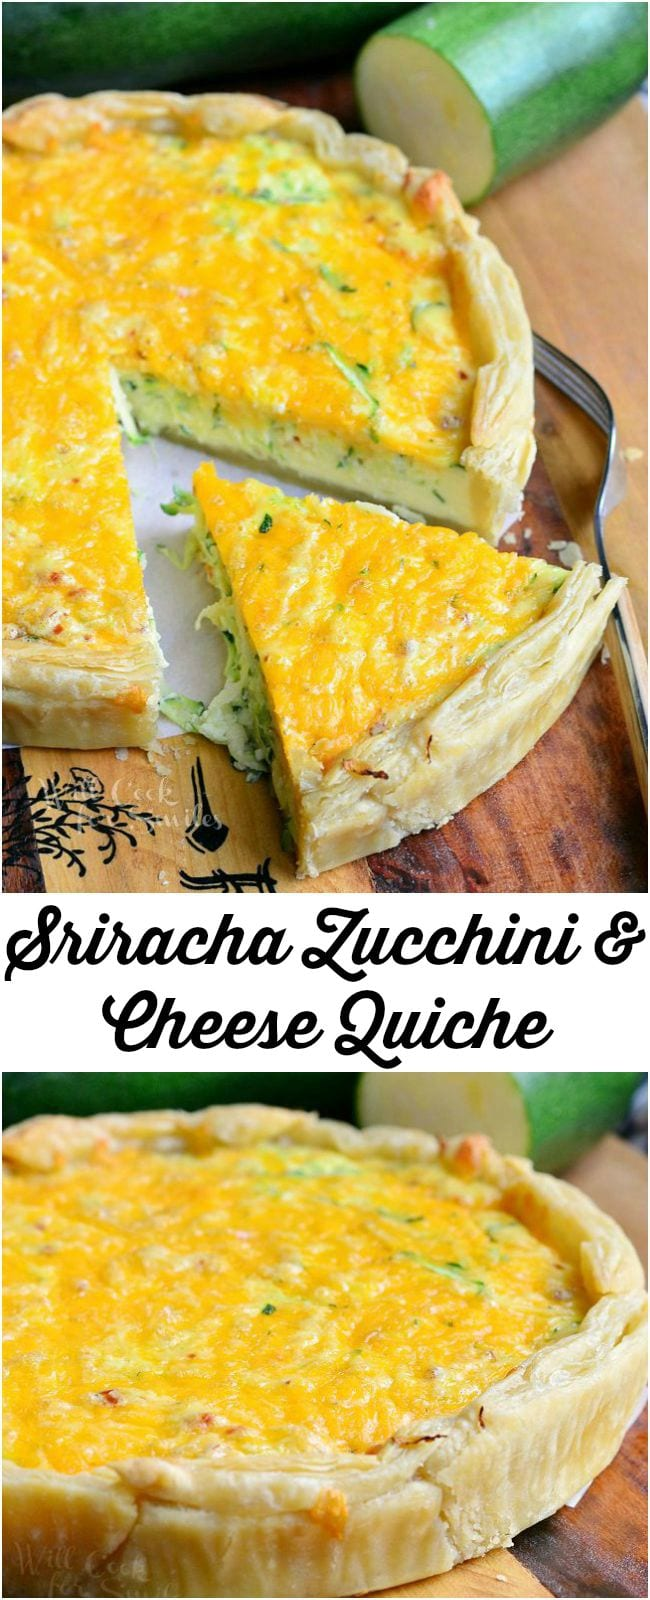 Sriracha Zucchini and Cheese Quiche || from willcookforsmiles.com